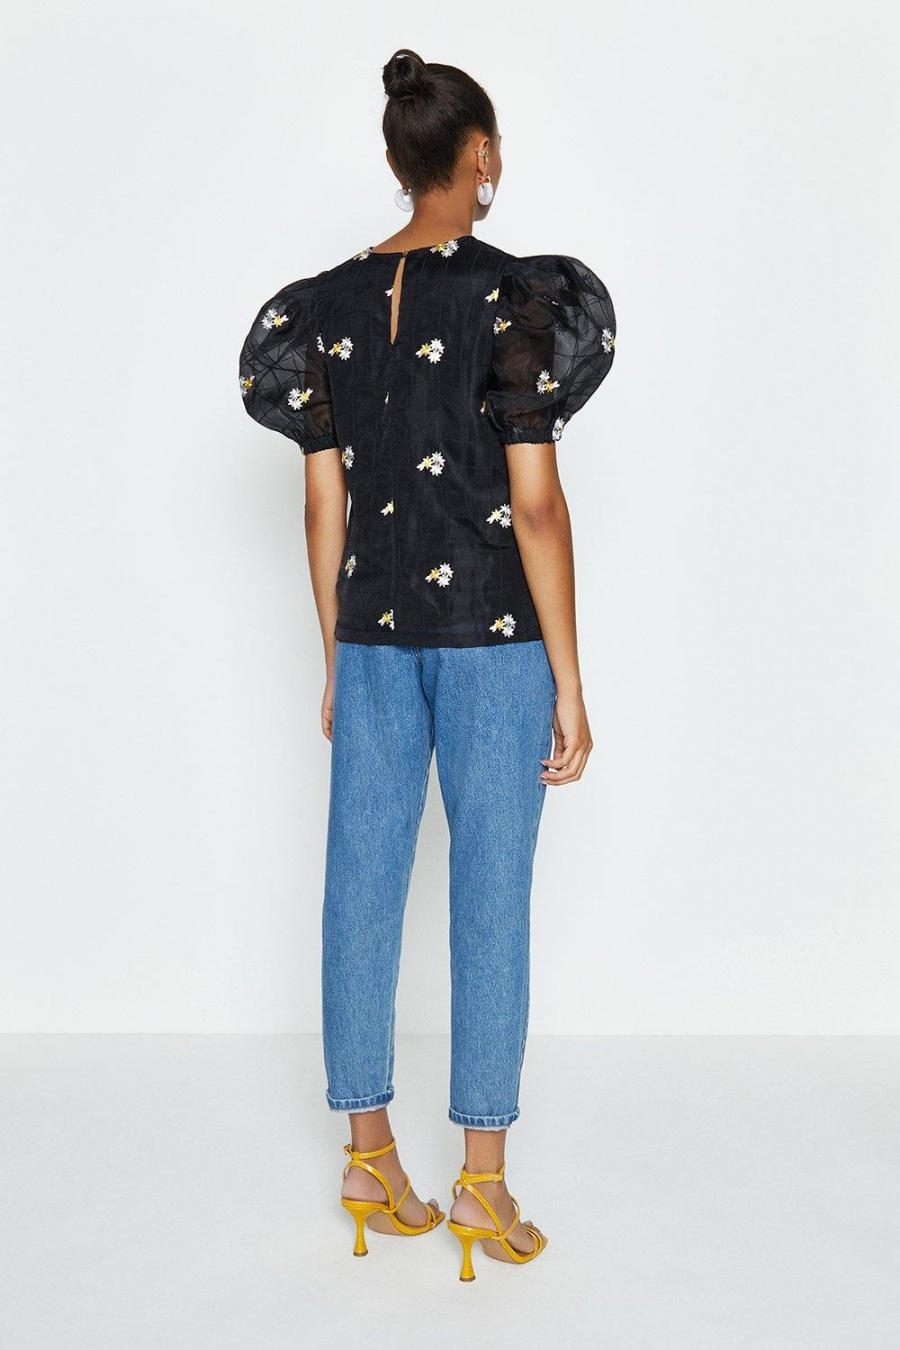 Coast Shell Tops | Womens Puff Sleeve Embroidered Top Black